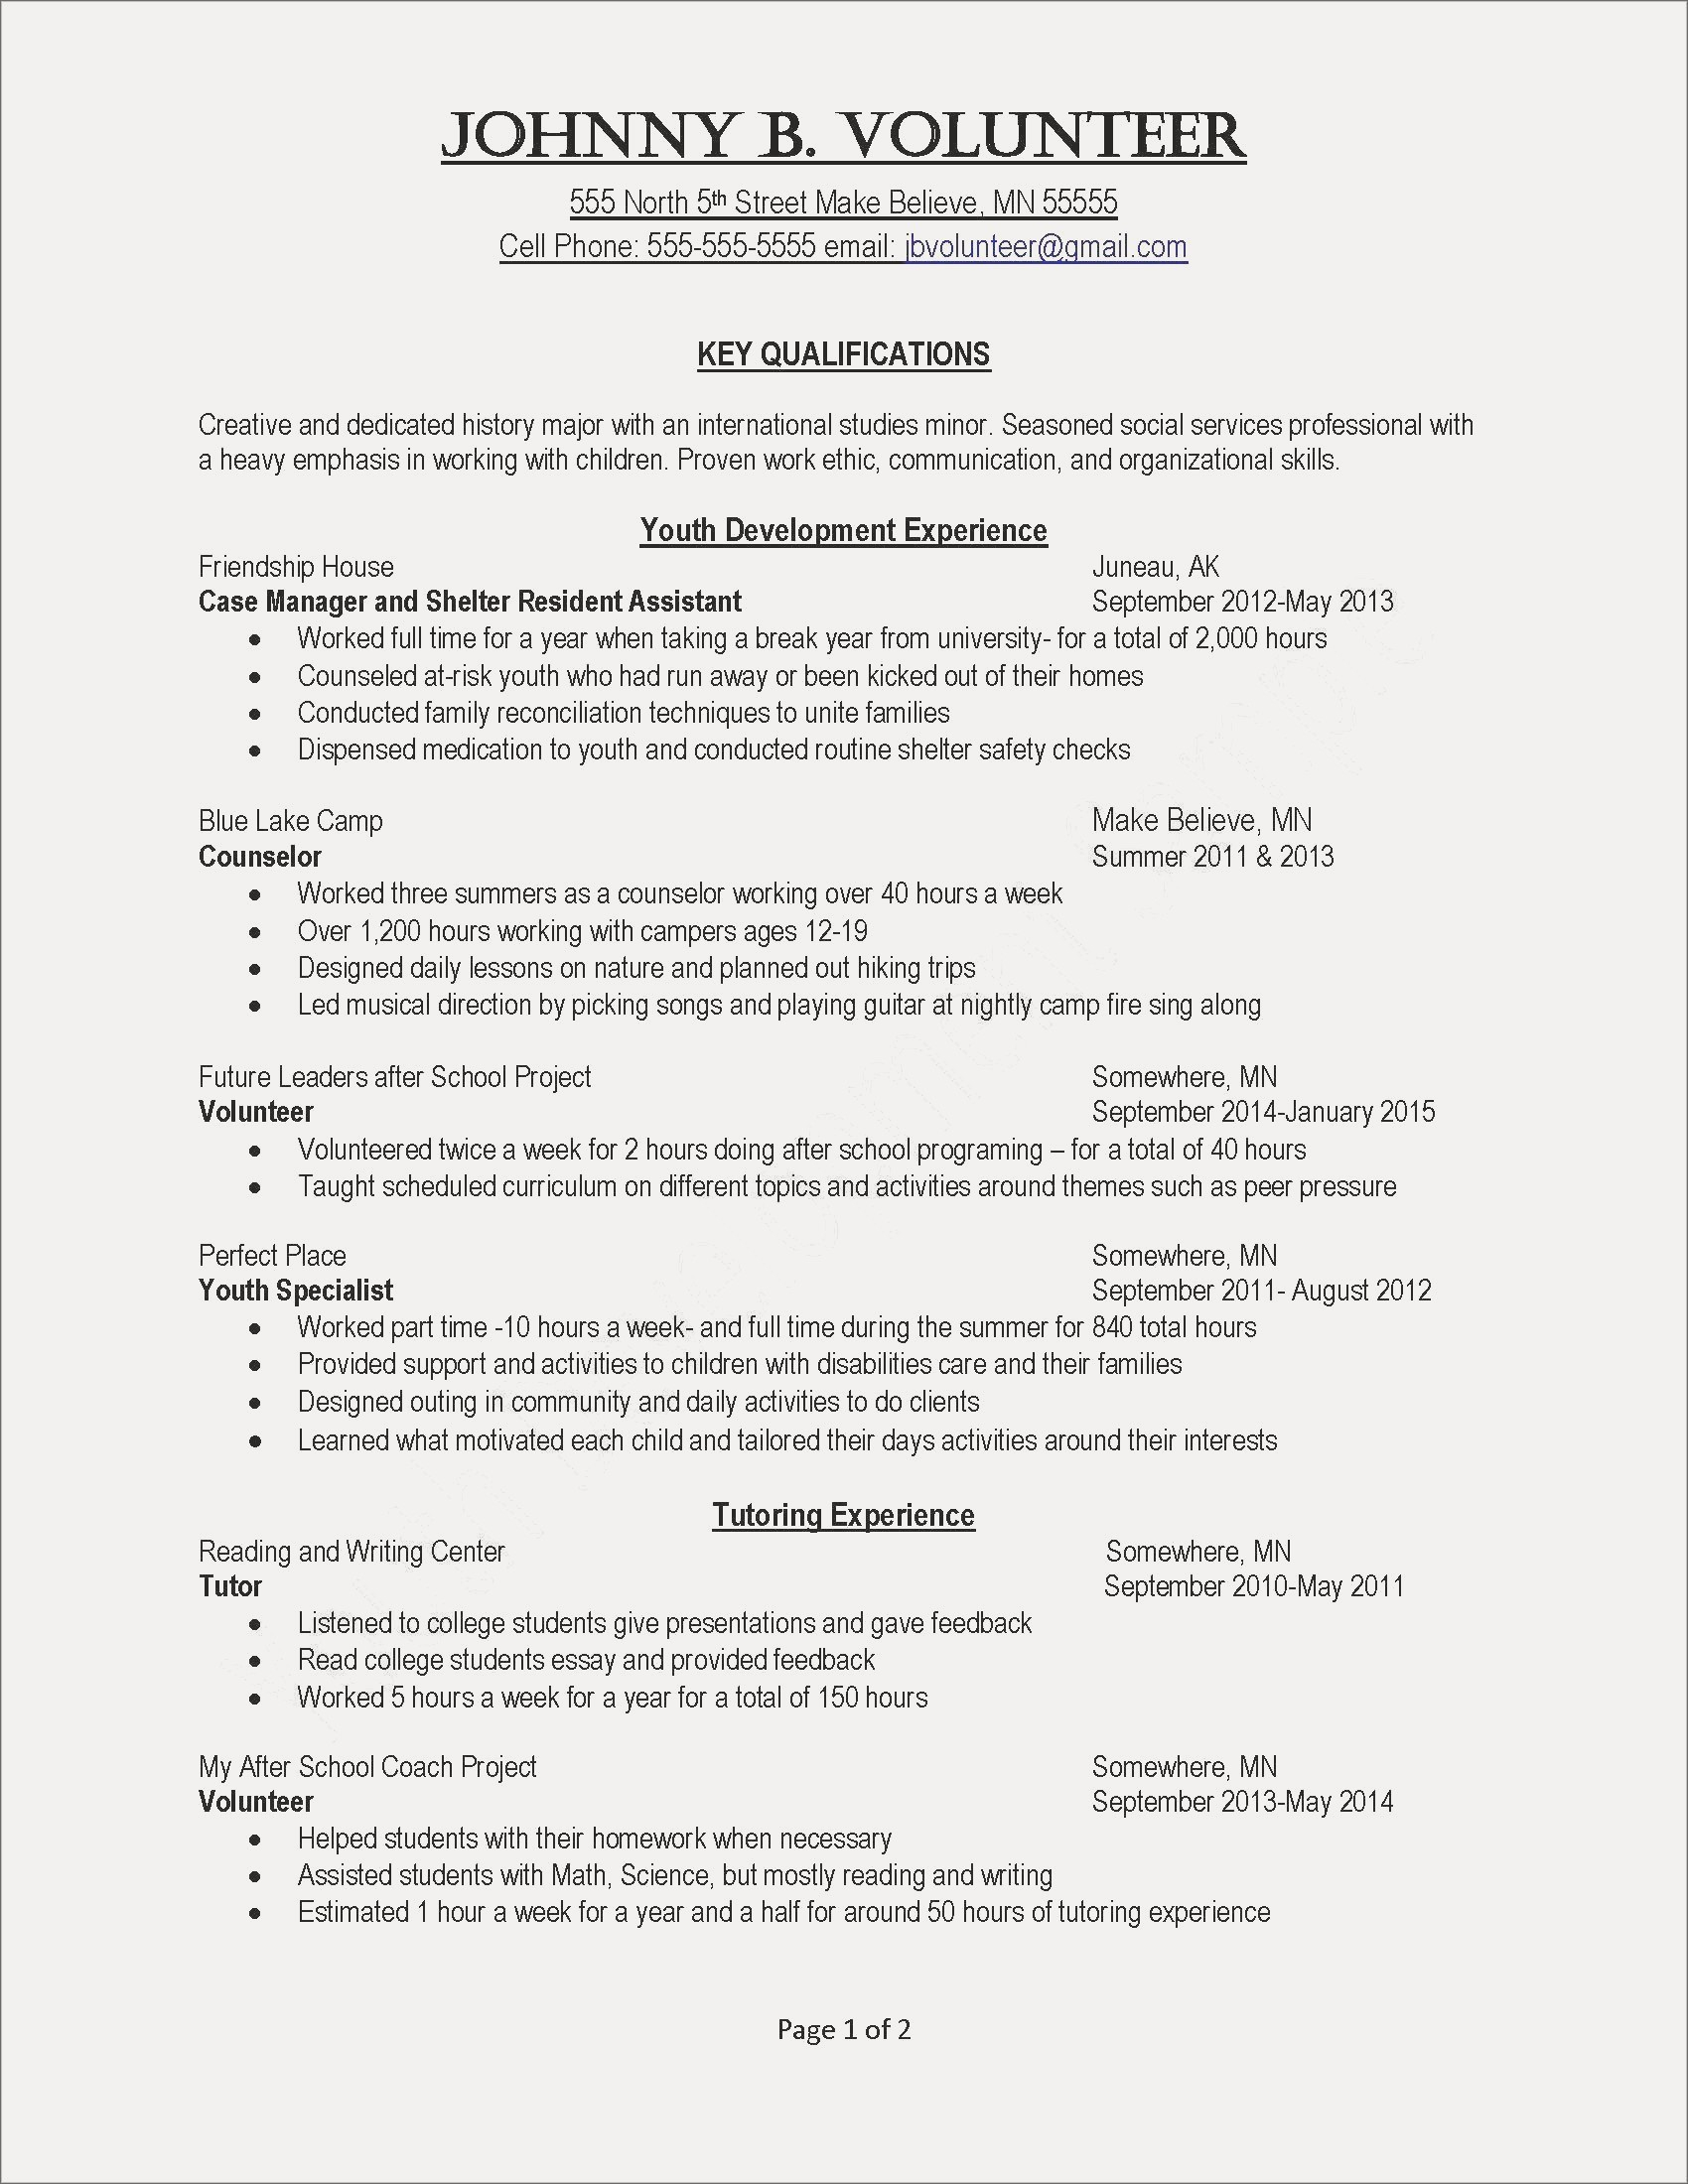 What to Include In Resume - Excellent Essay Examples New Essay Example Save Resumes Skills